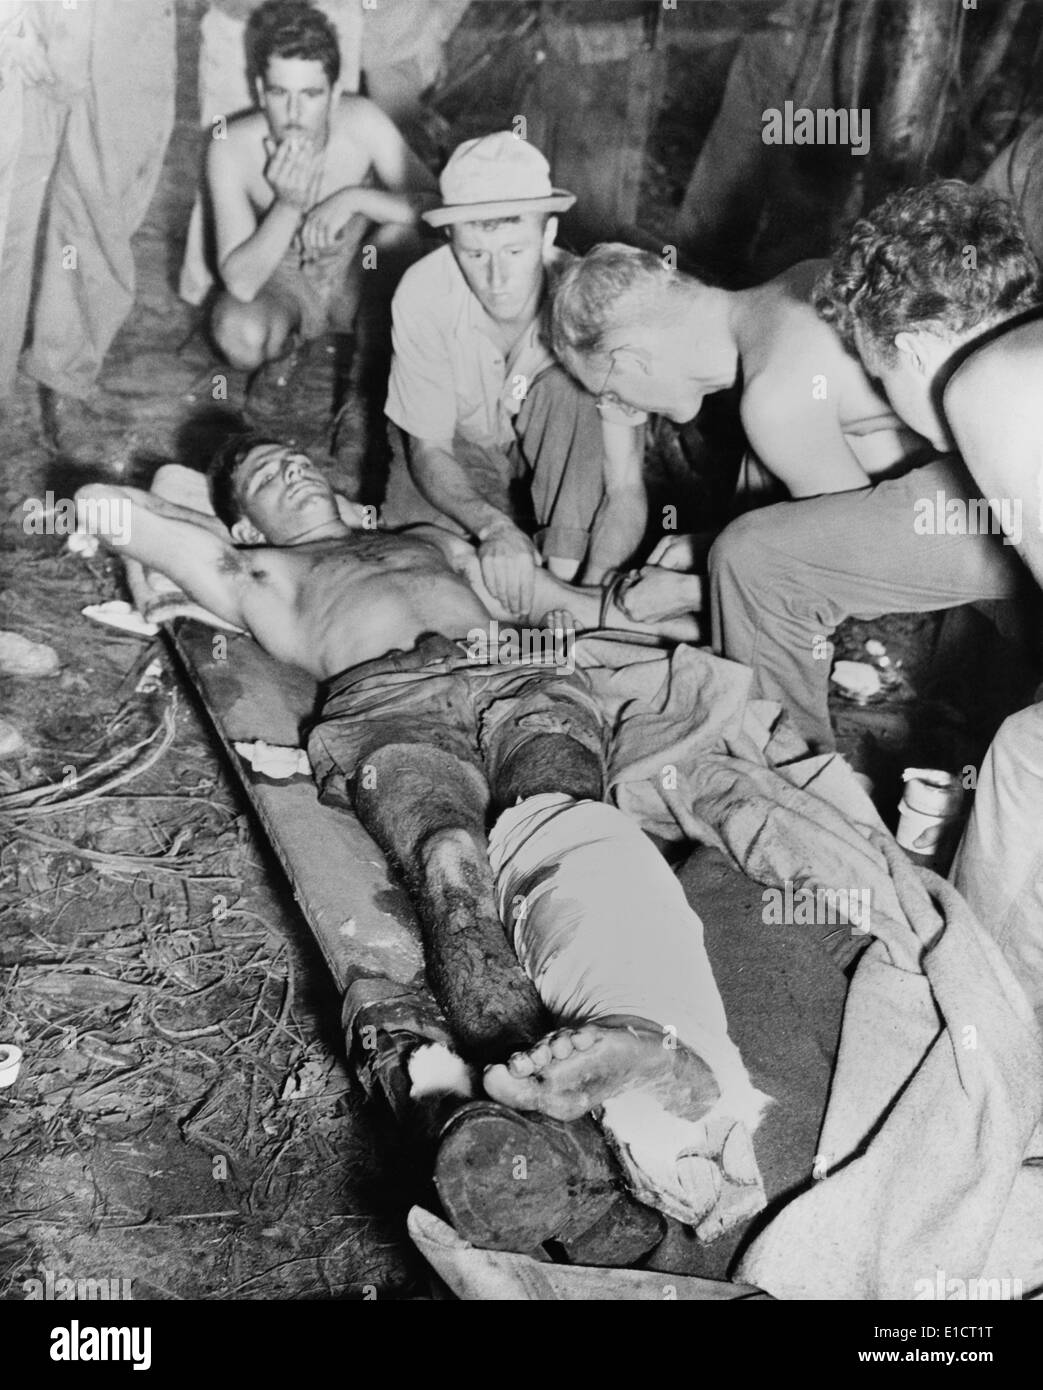 A wounded American soldier gets a blood transfusion in New Guinea jungle. The U.S. Army was fighting against the Japanese - Stock Image